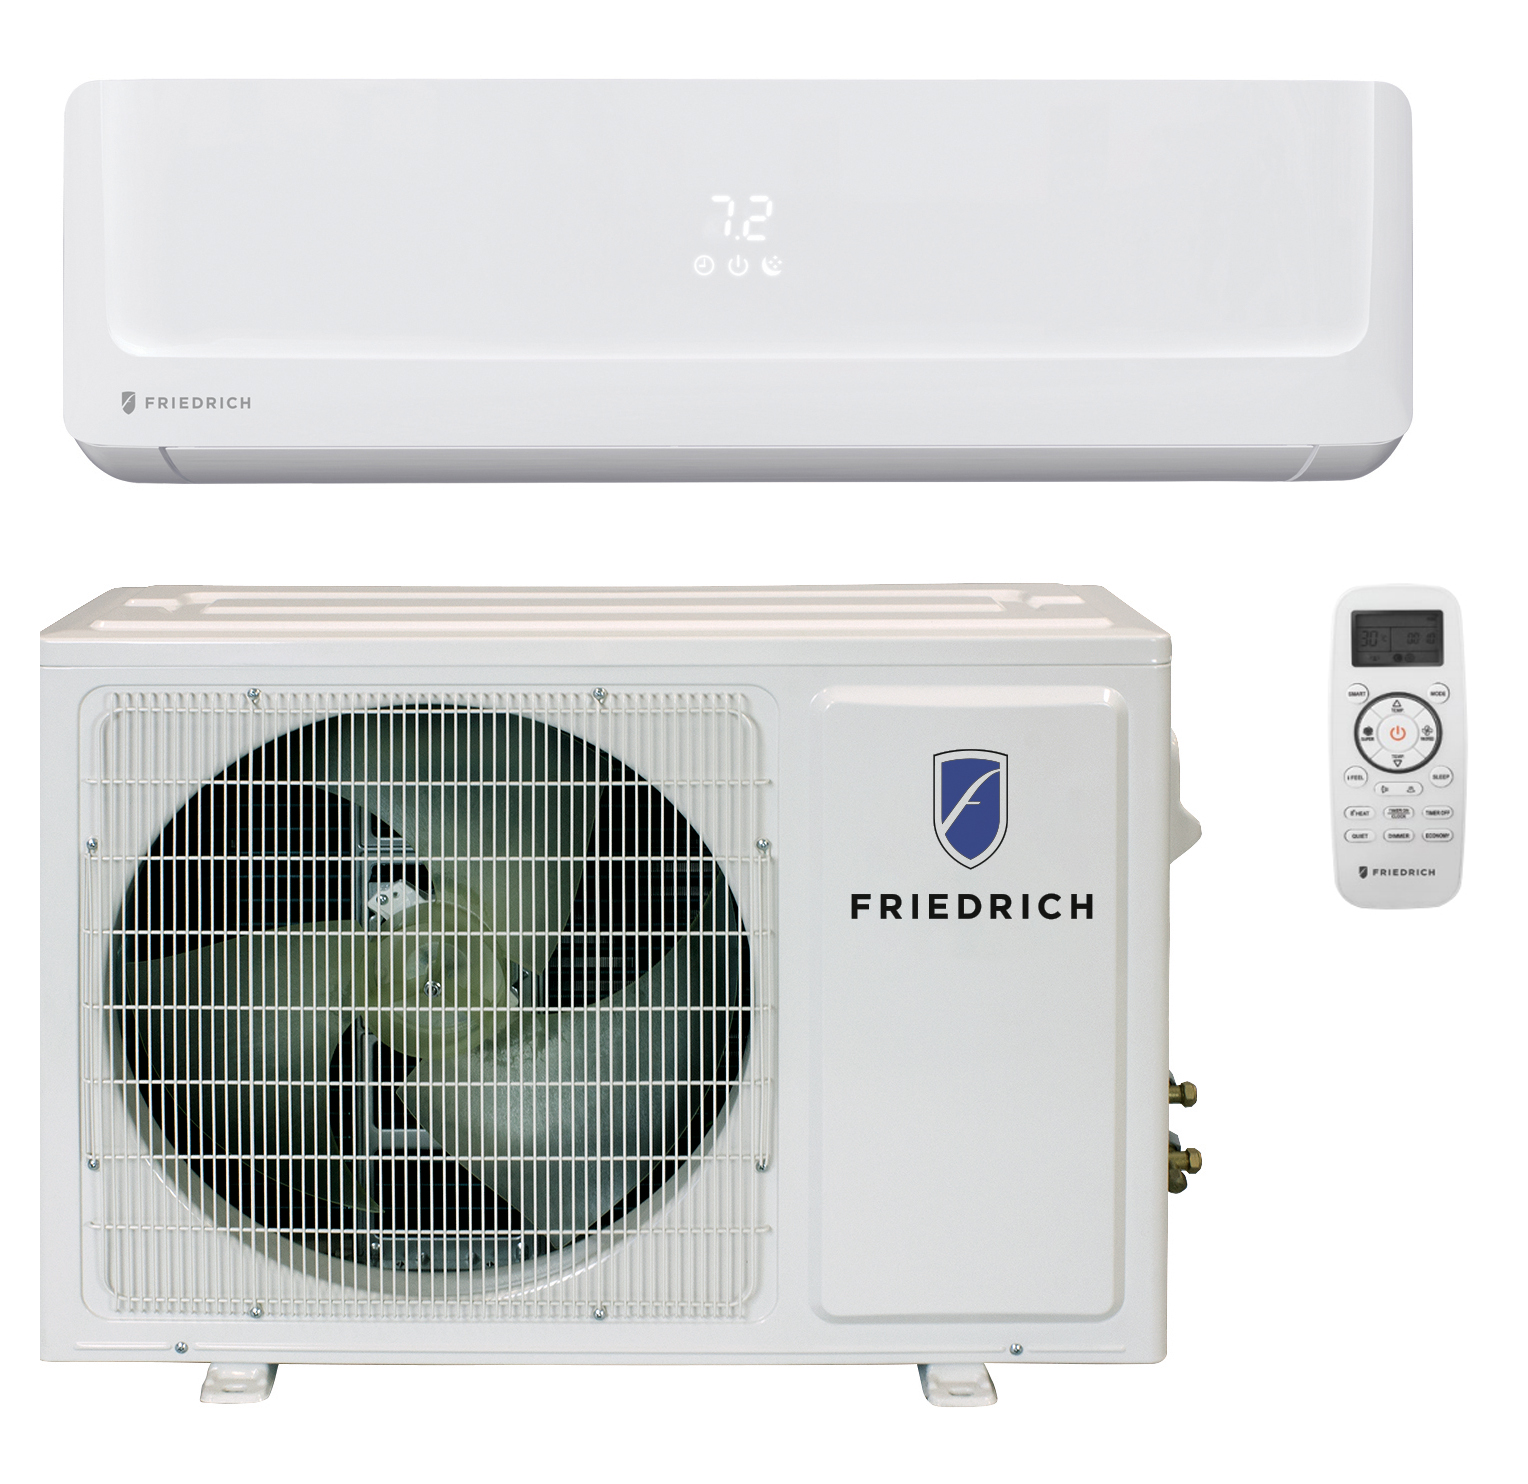 Friedrich FPHW121A 12000 BTU Floating Air Pro Series Single Zone Mini Split with Built-In WiFi - Heat and Cool - Energy Star - 115V